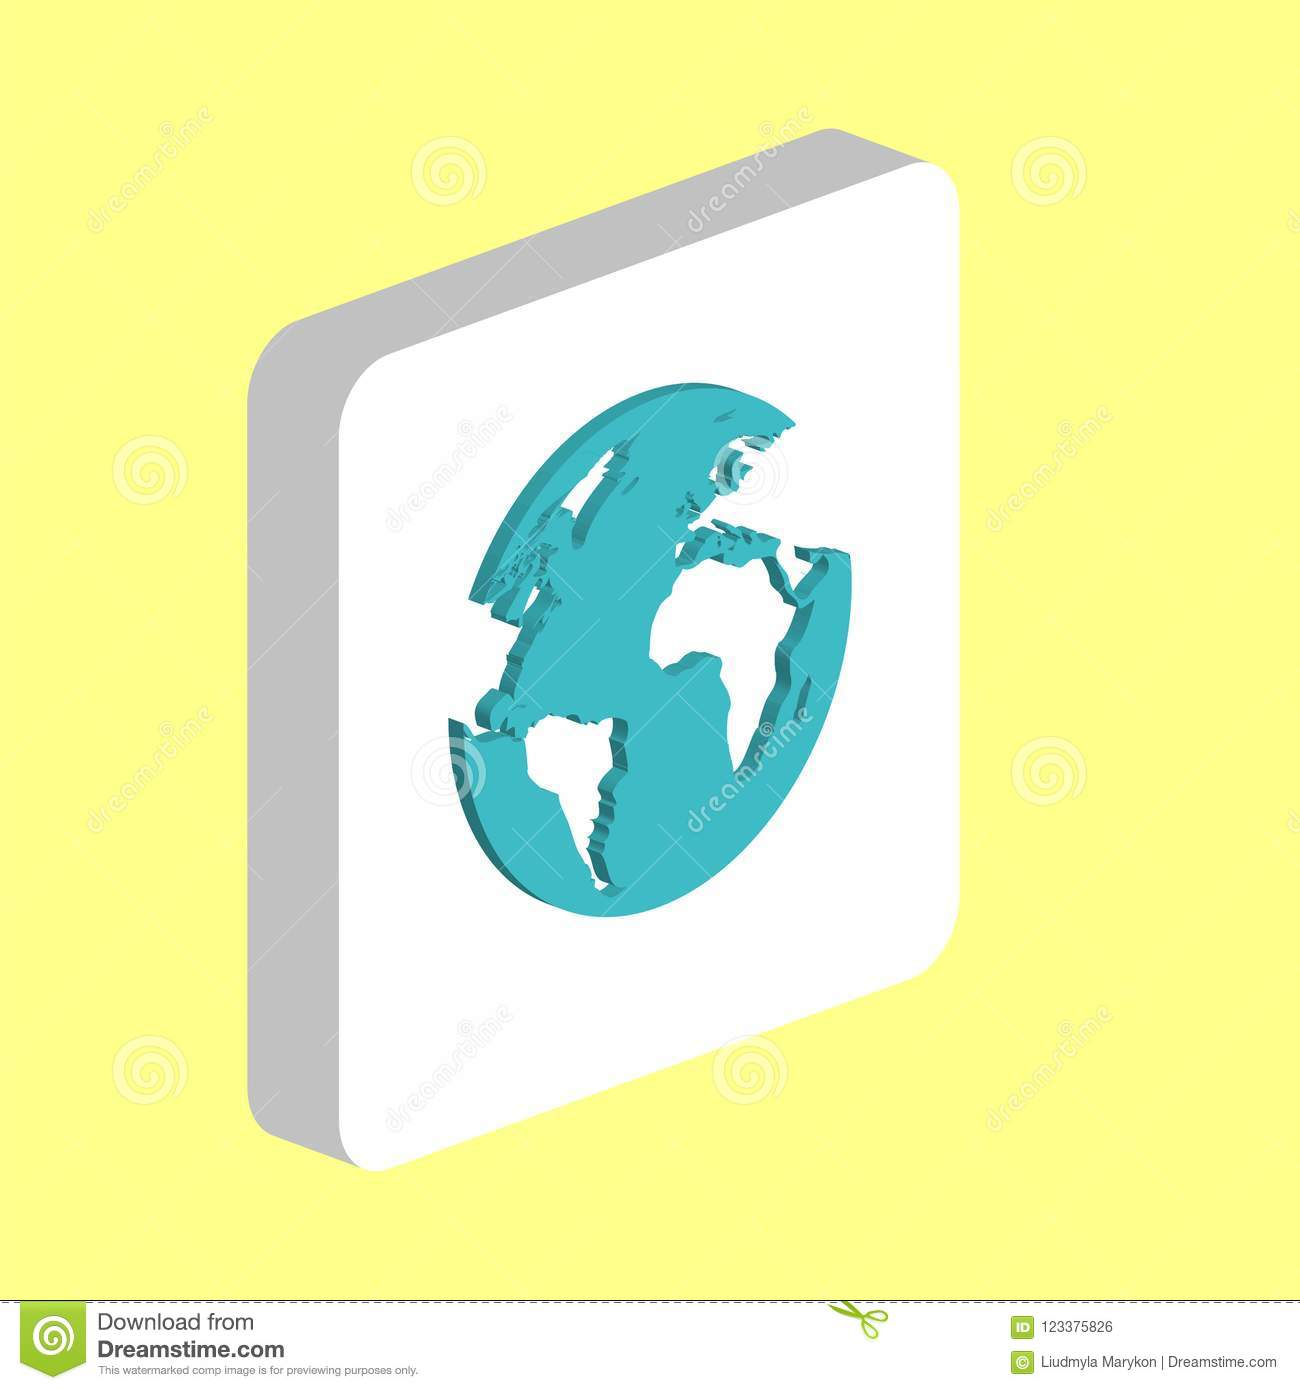 Earth World Map Computer Symbol For Your Business Project ... on mod symbols, power symbols, crane symbols, sport symbols, baltimore symbols, cd symbols, race symbols, state symbols, real symbols, cook symbols,